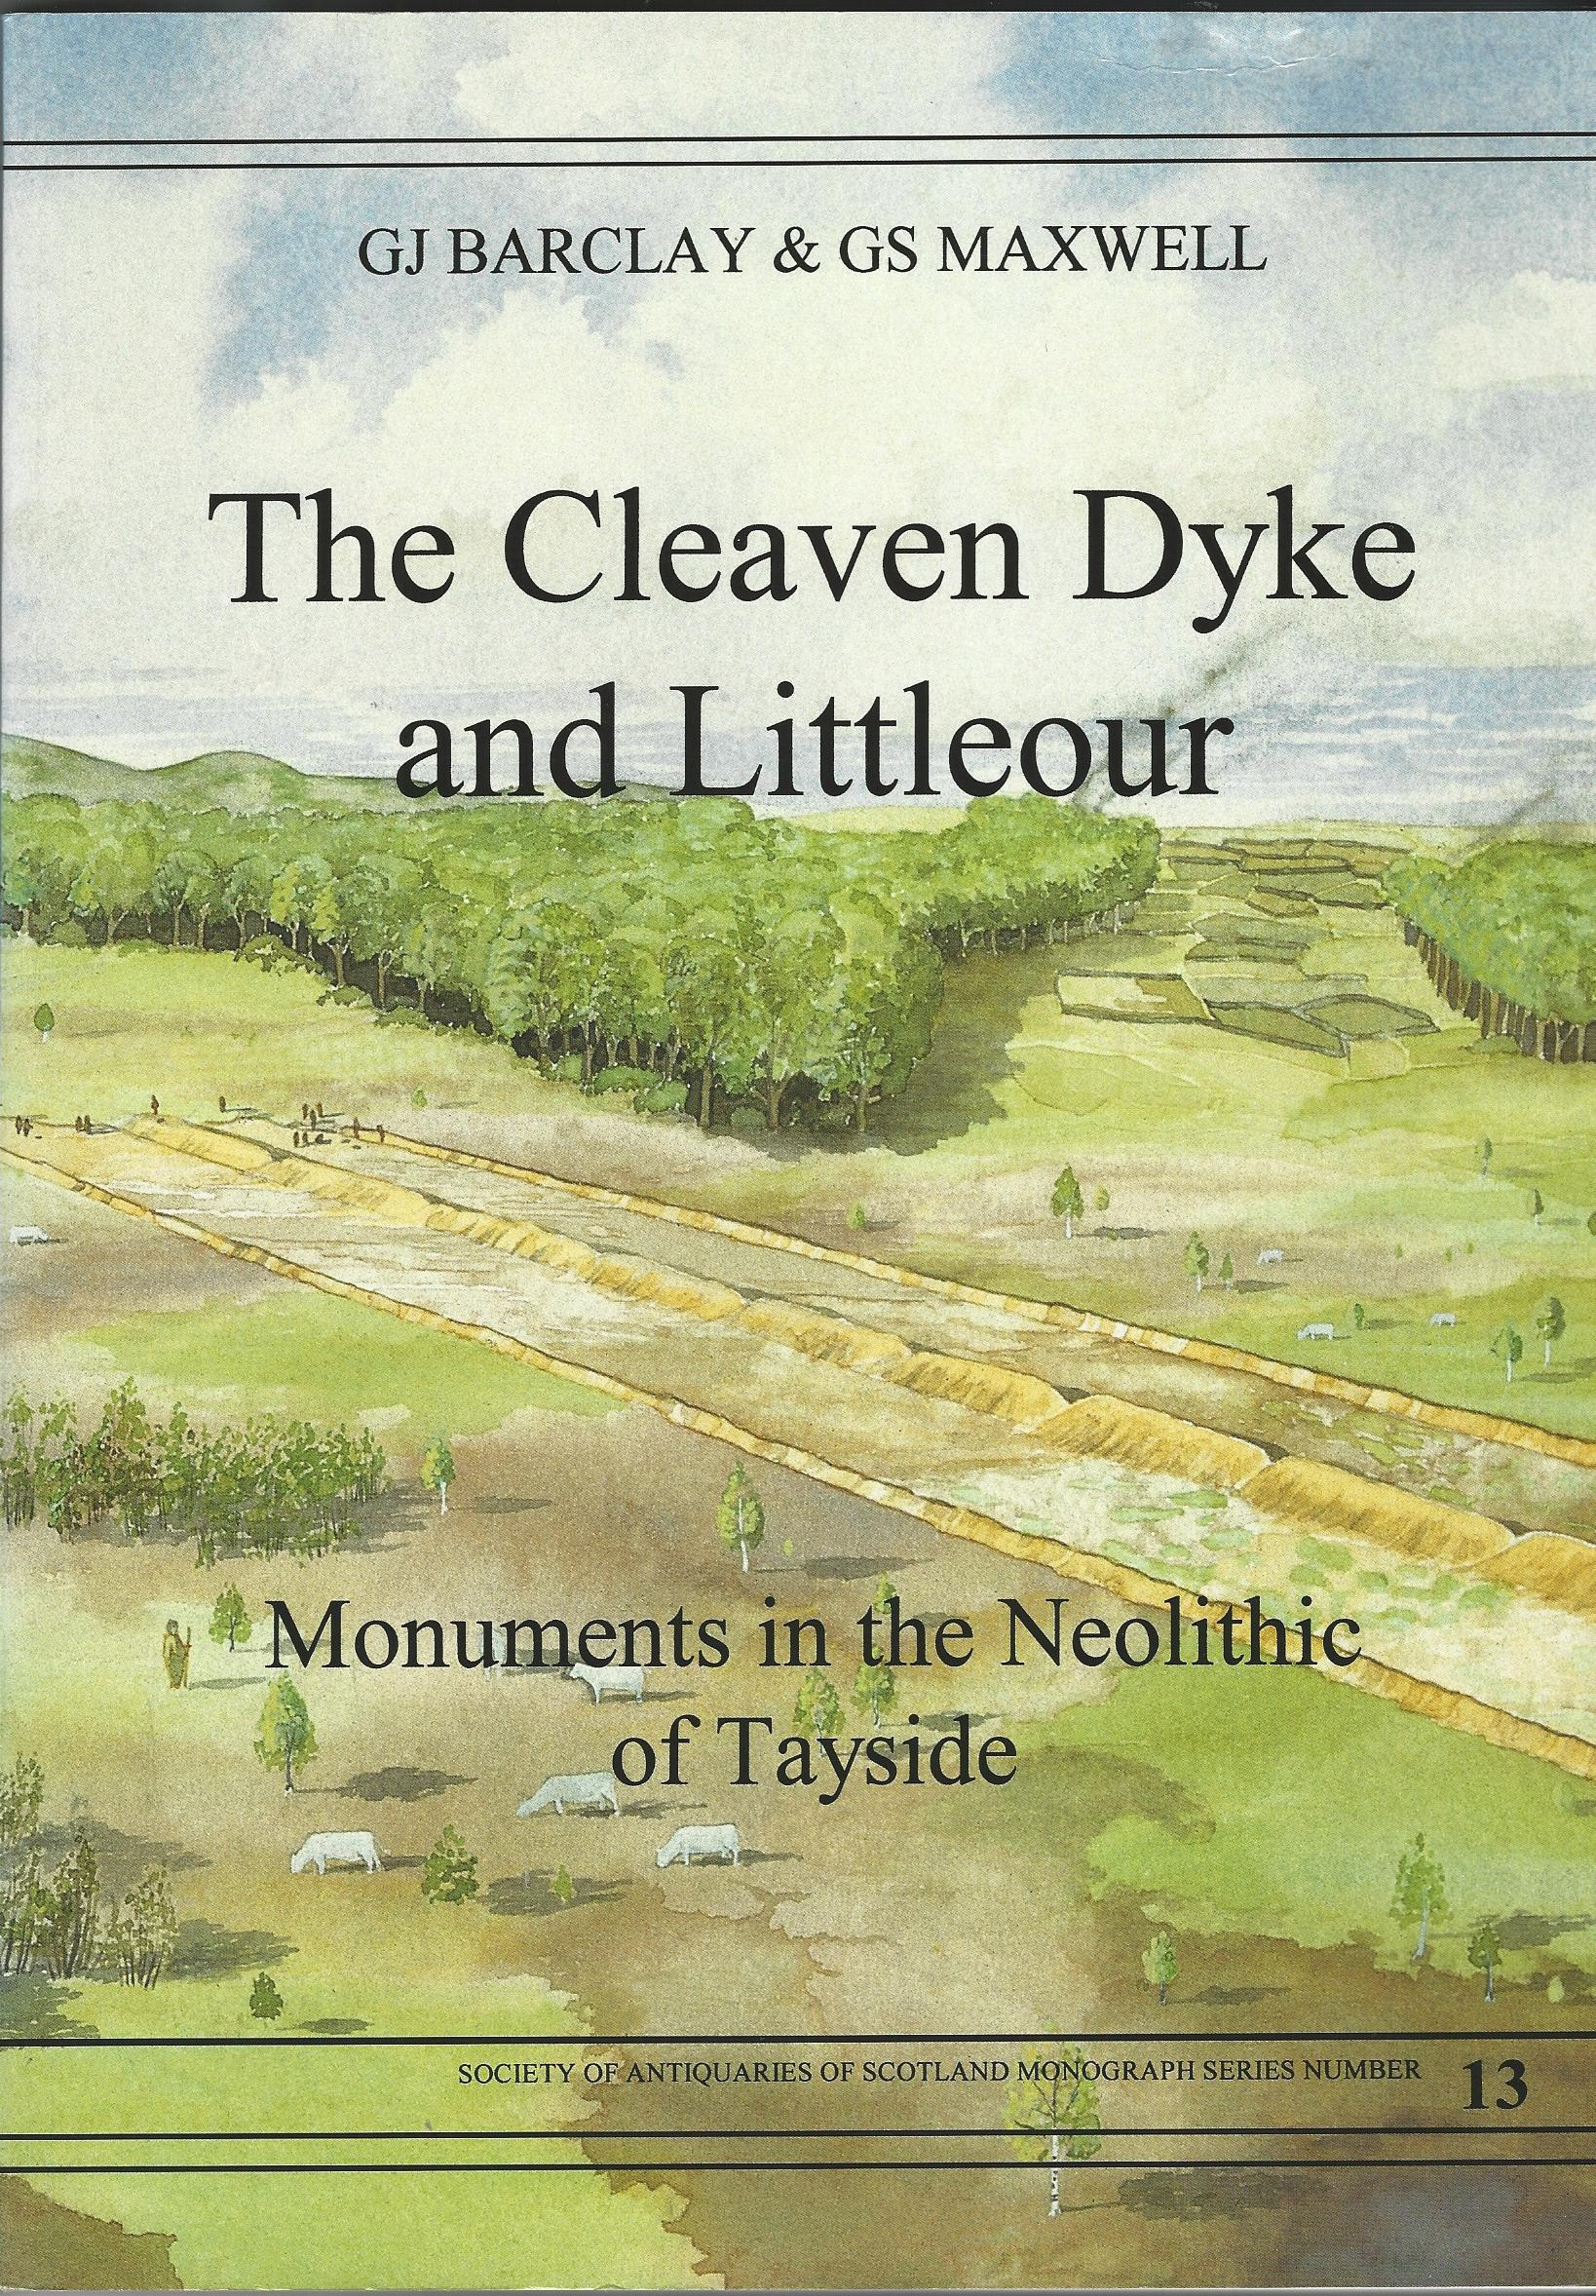 Image for The Cleaven Dyke and Littleour: Monuments in the Neolithic of Tayside (Society of Antiquaries of Scotland monograph)